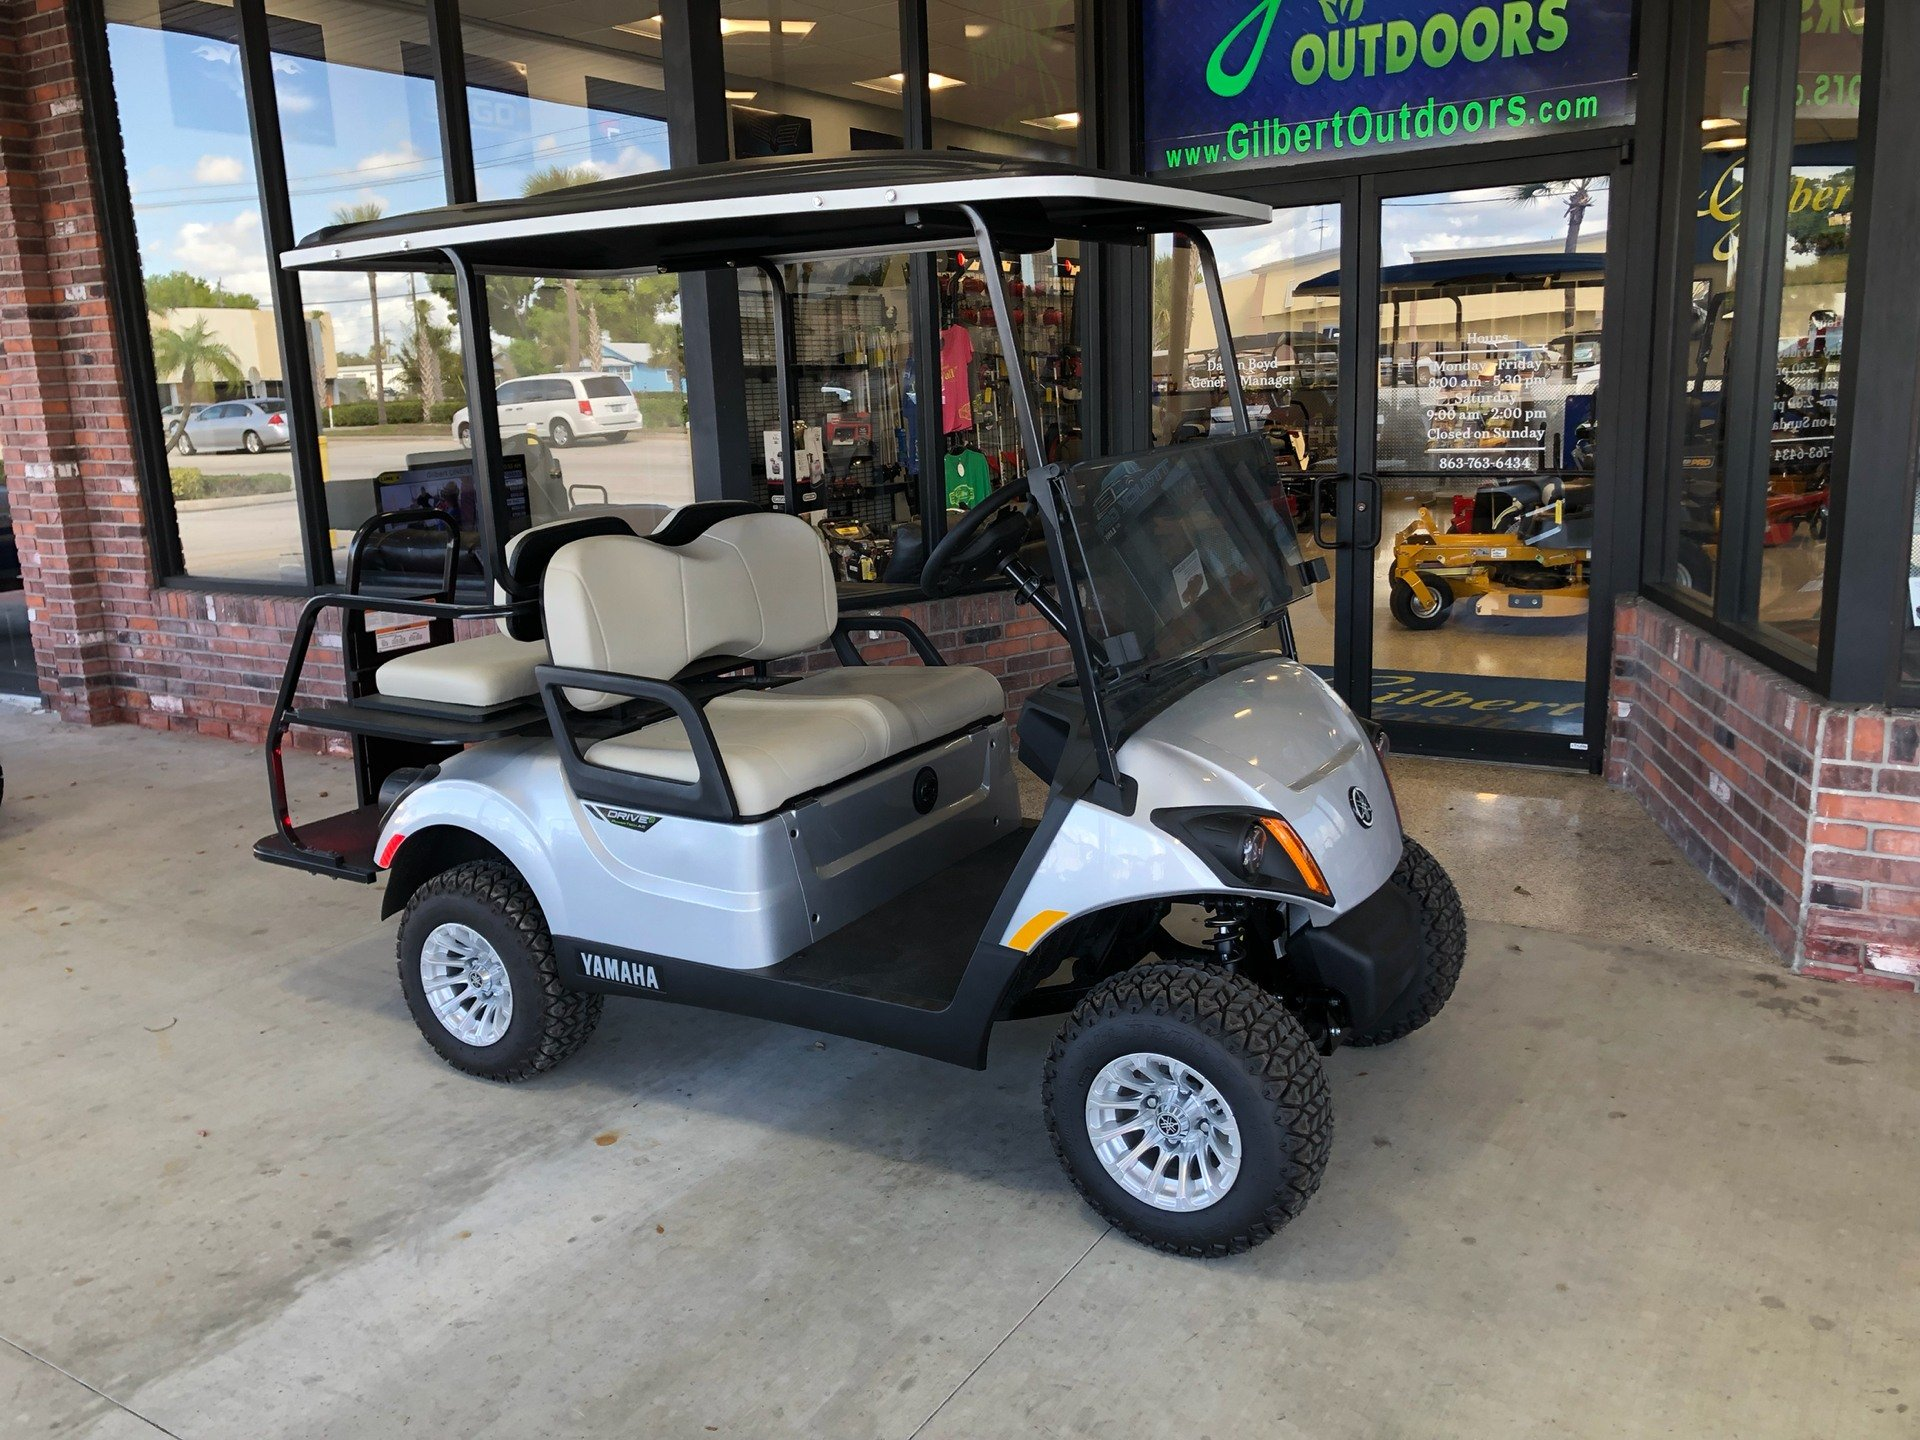 2019 Yamaha Adventurer Sport 2+2 (Electric) in Okeechobee, Florida - Photo 3